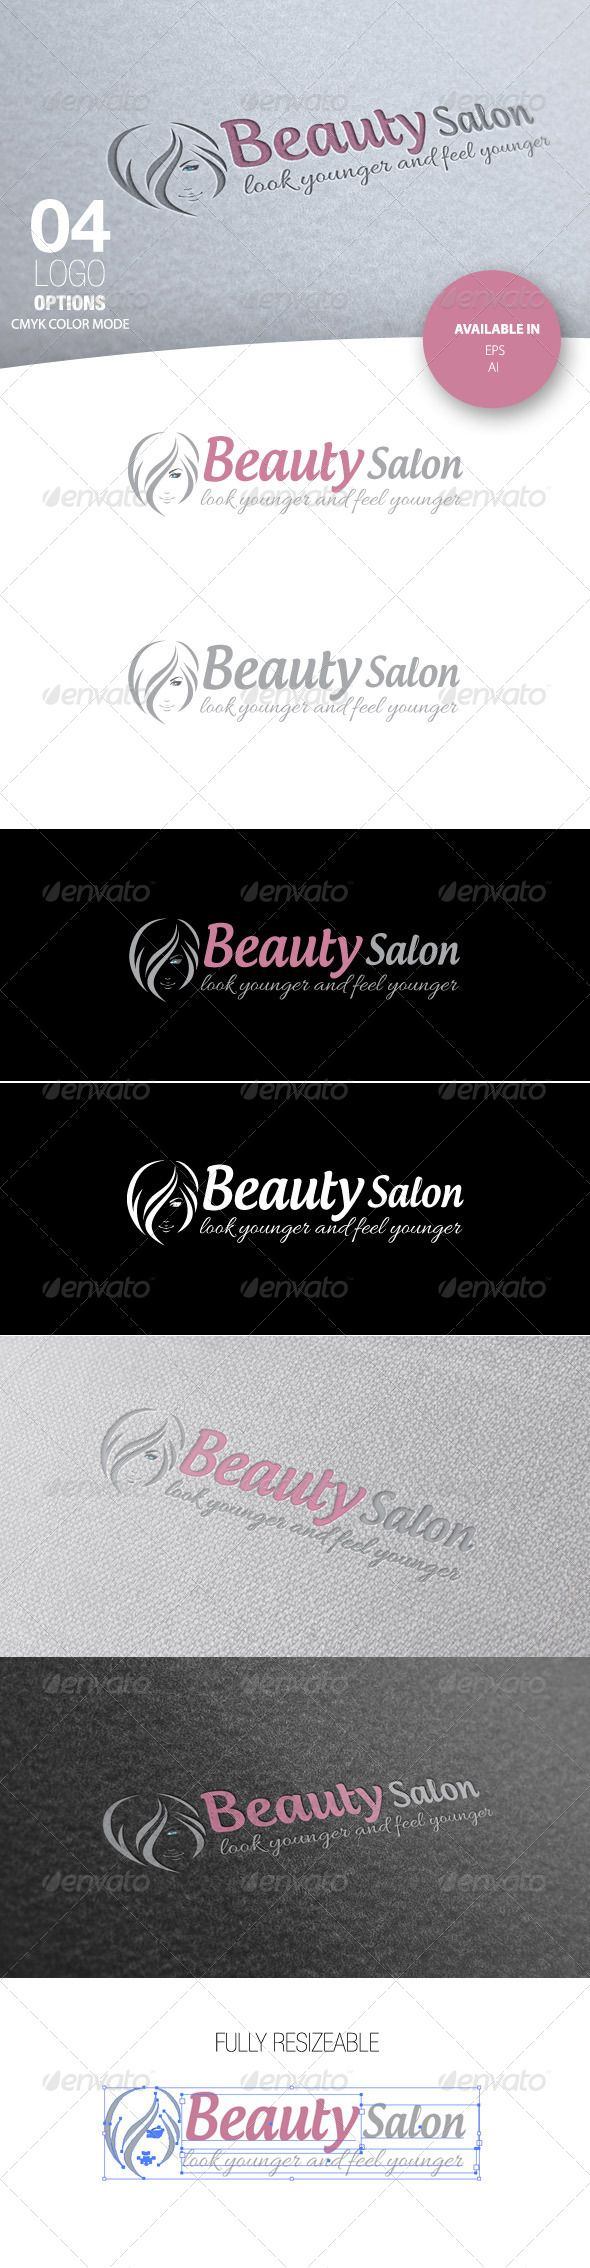 69 best images about kk on pinterest logos spa logo and for Hair salon companies